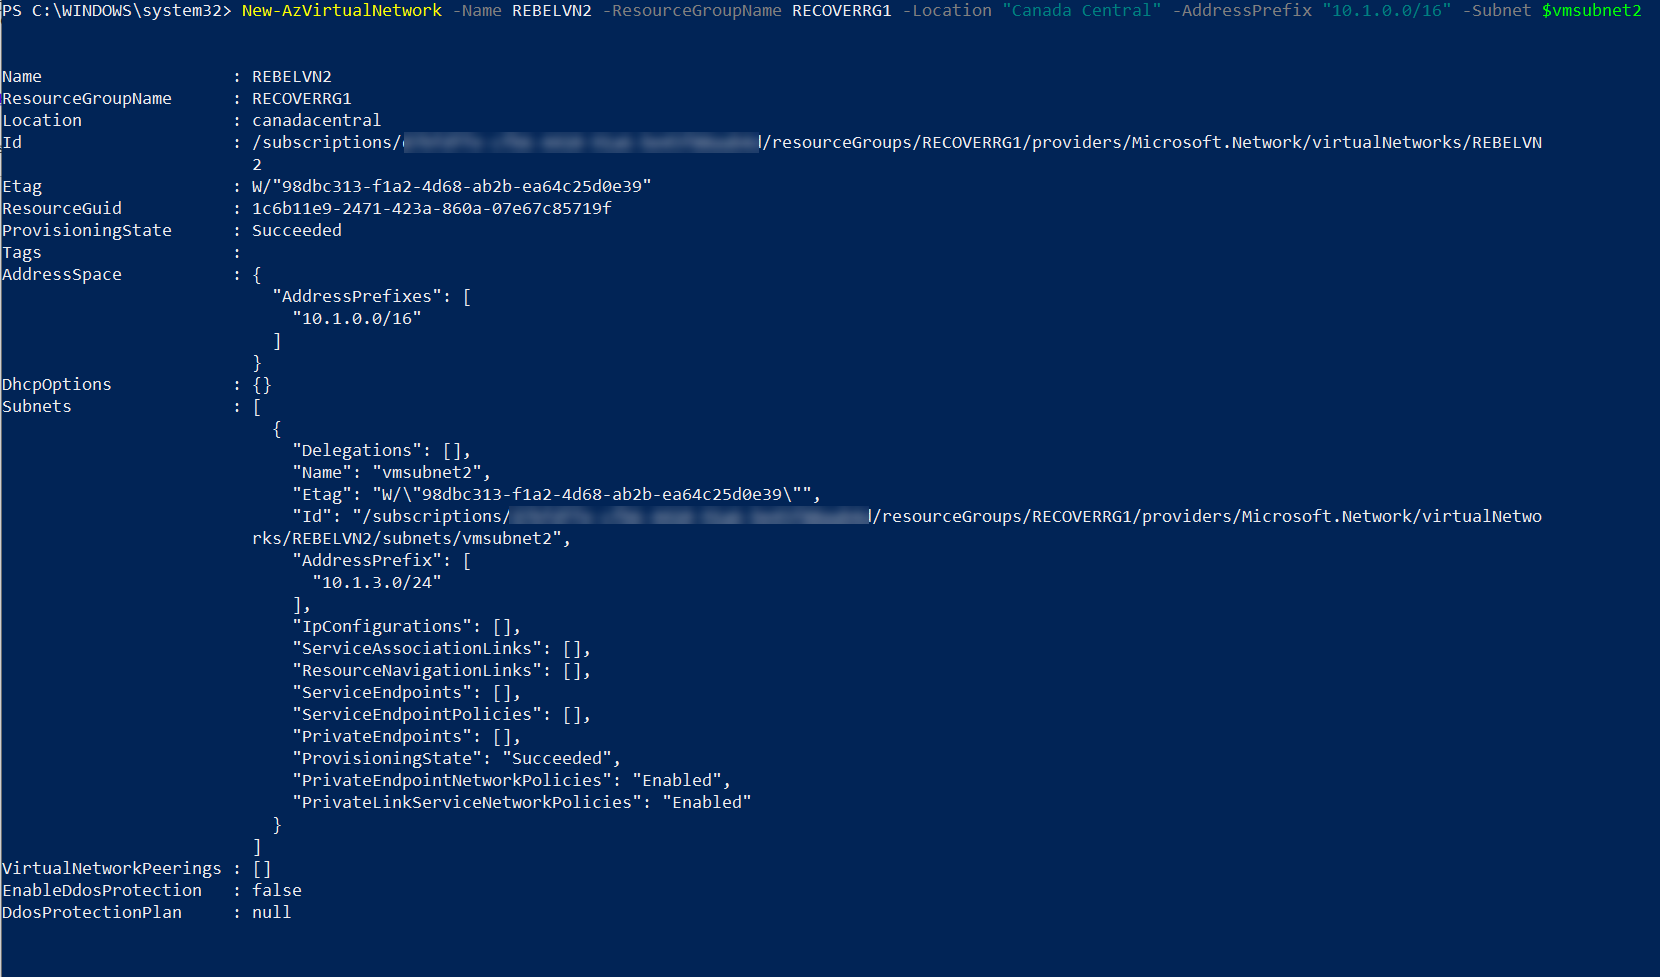 create azure virtual network for target